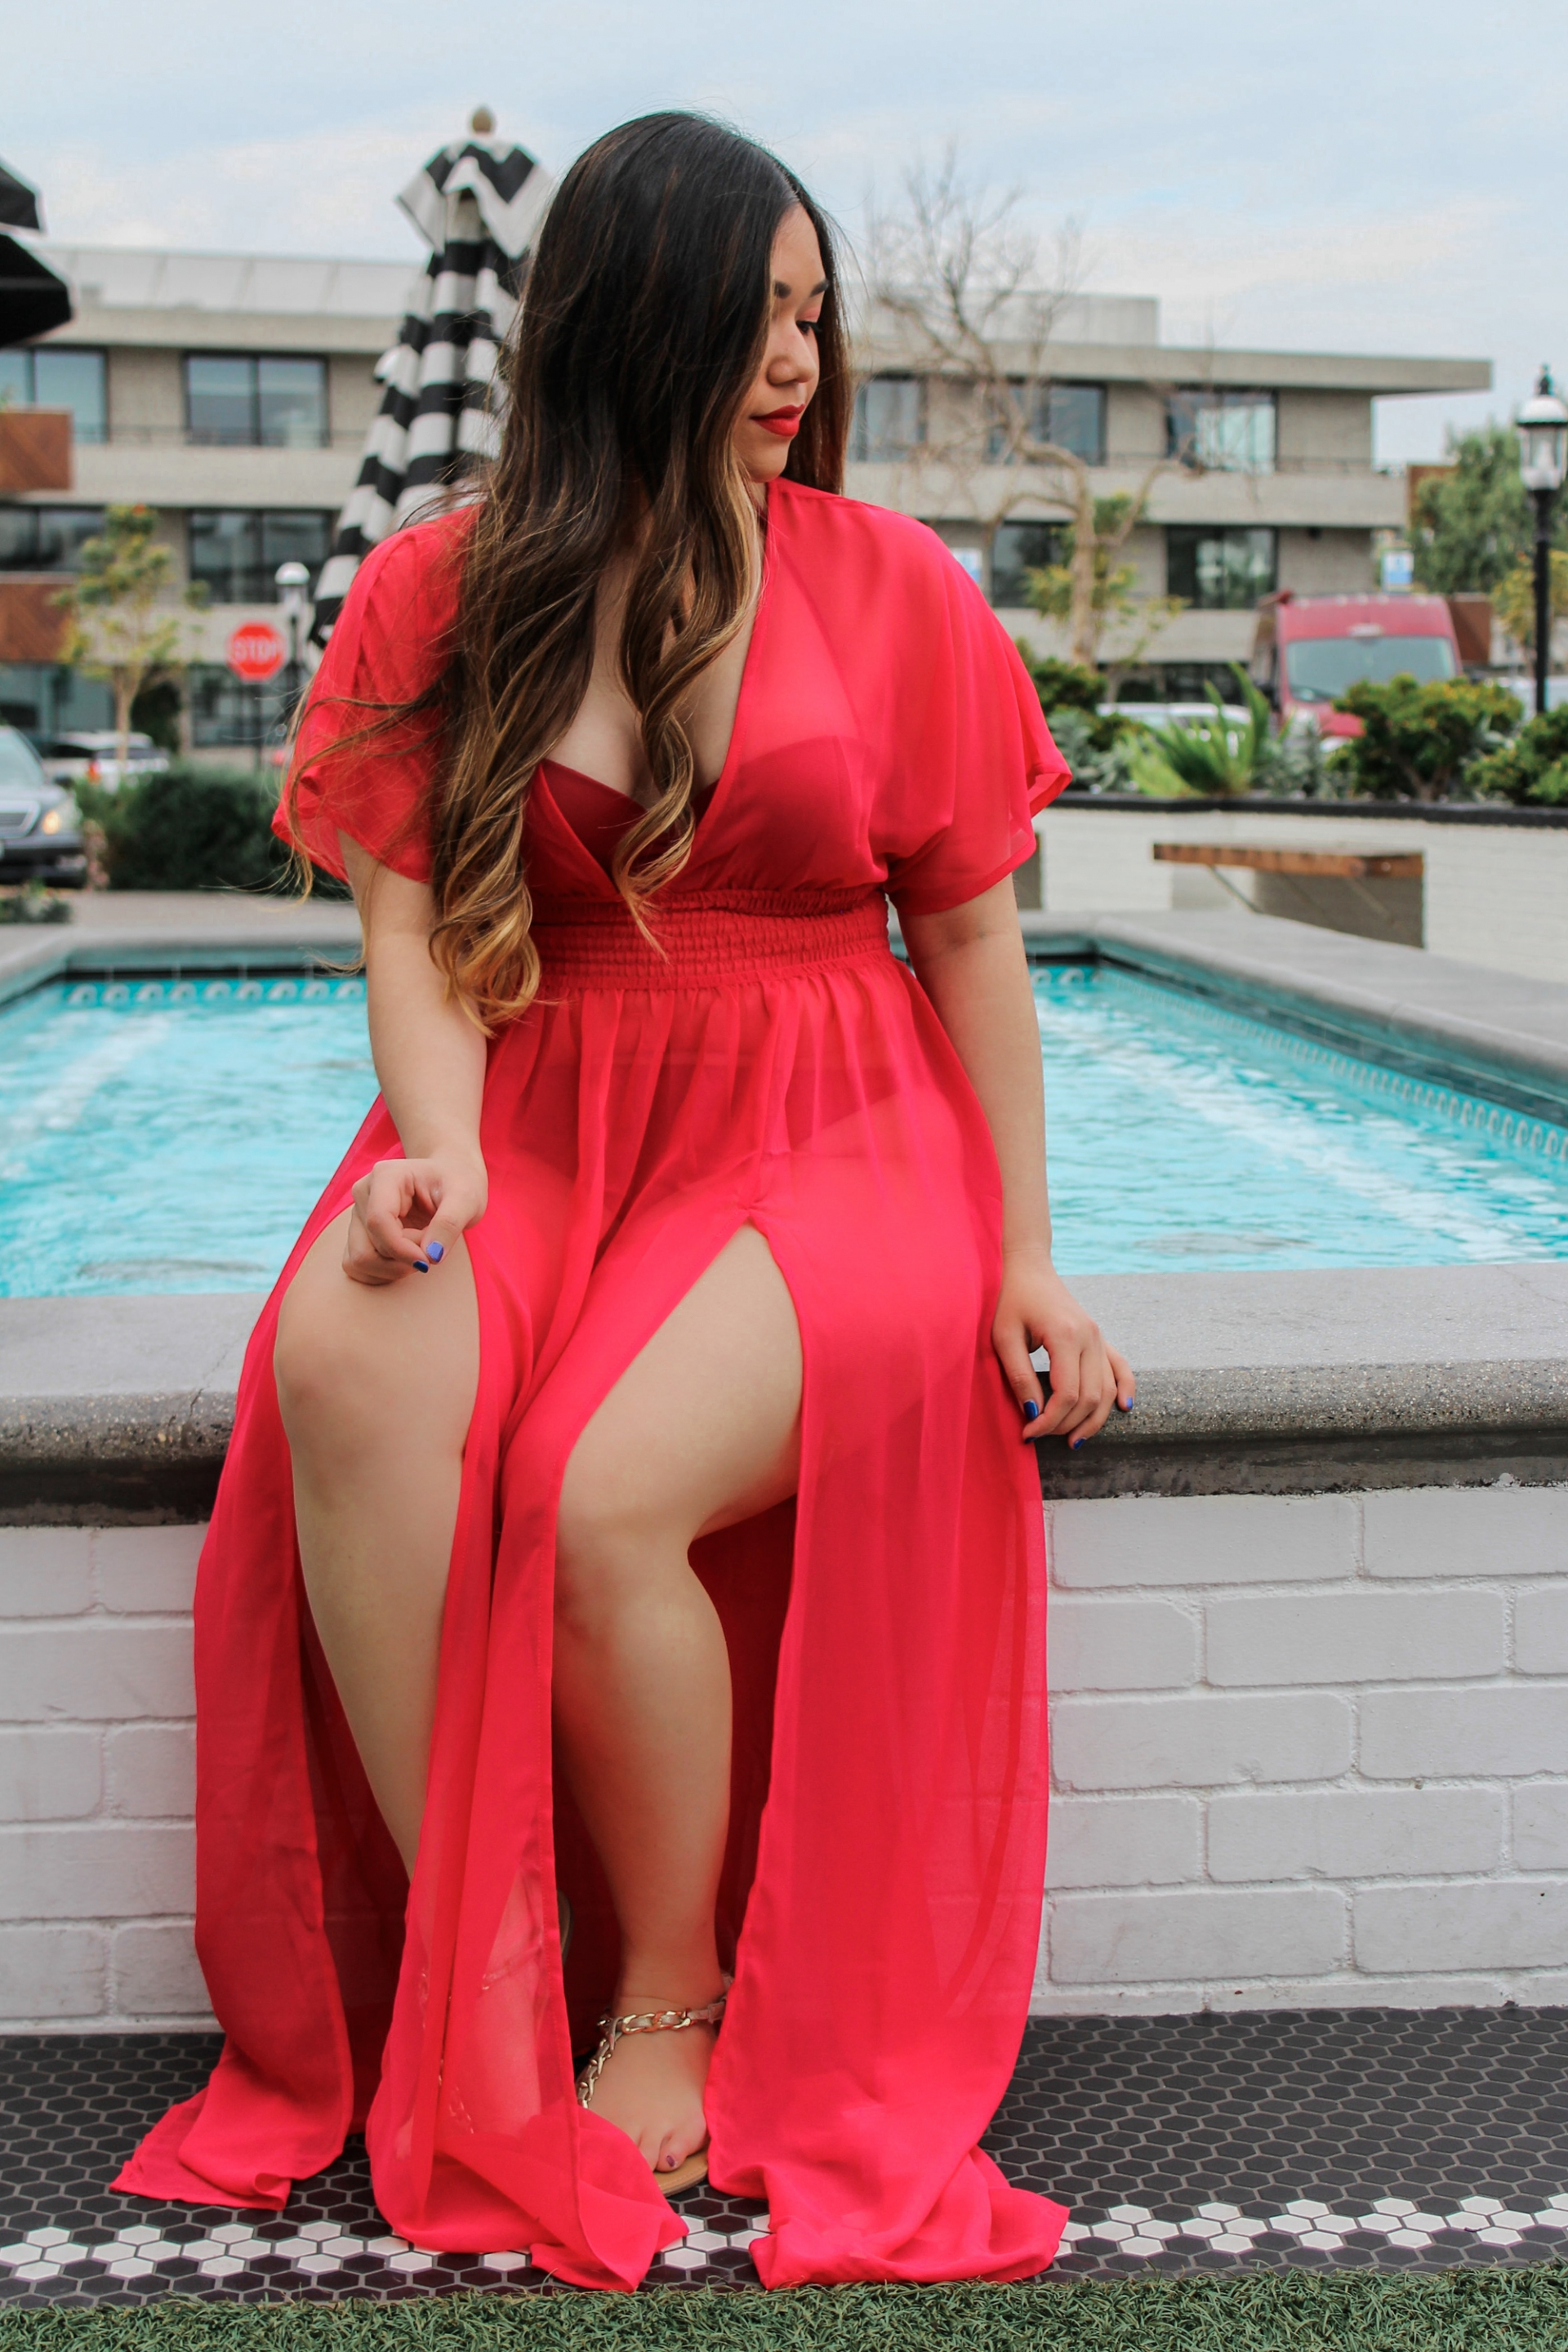 Upbra Adjustable Cleavage Push Up Bra Bikini Red Maxi Beach Coverup High Slit Pink Straw Hat